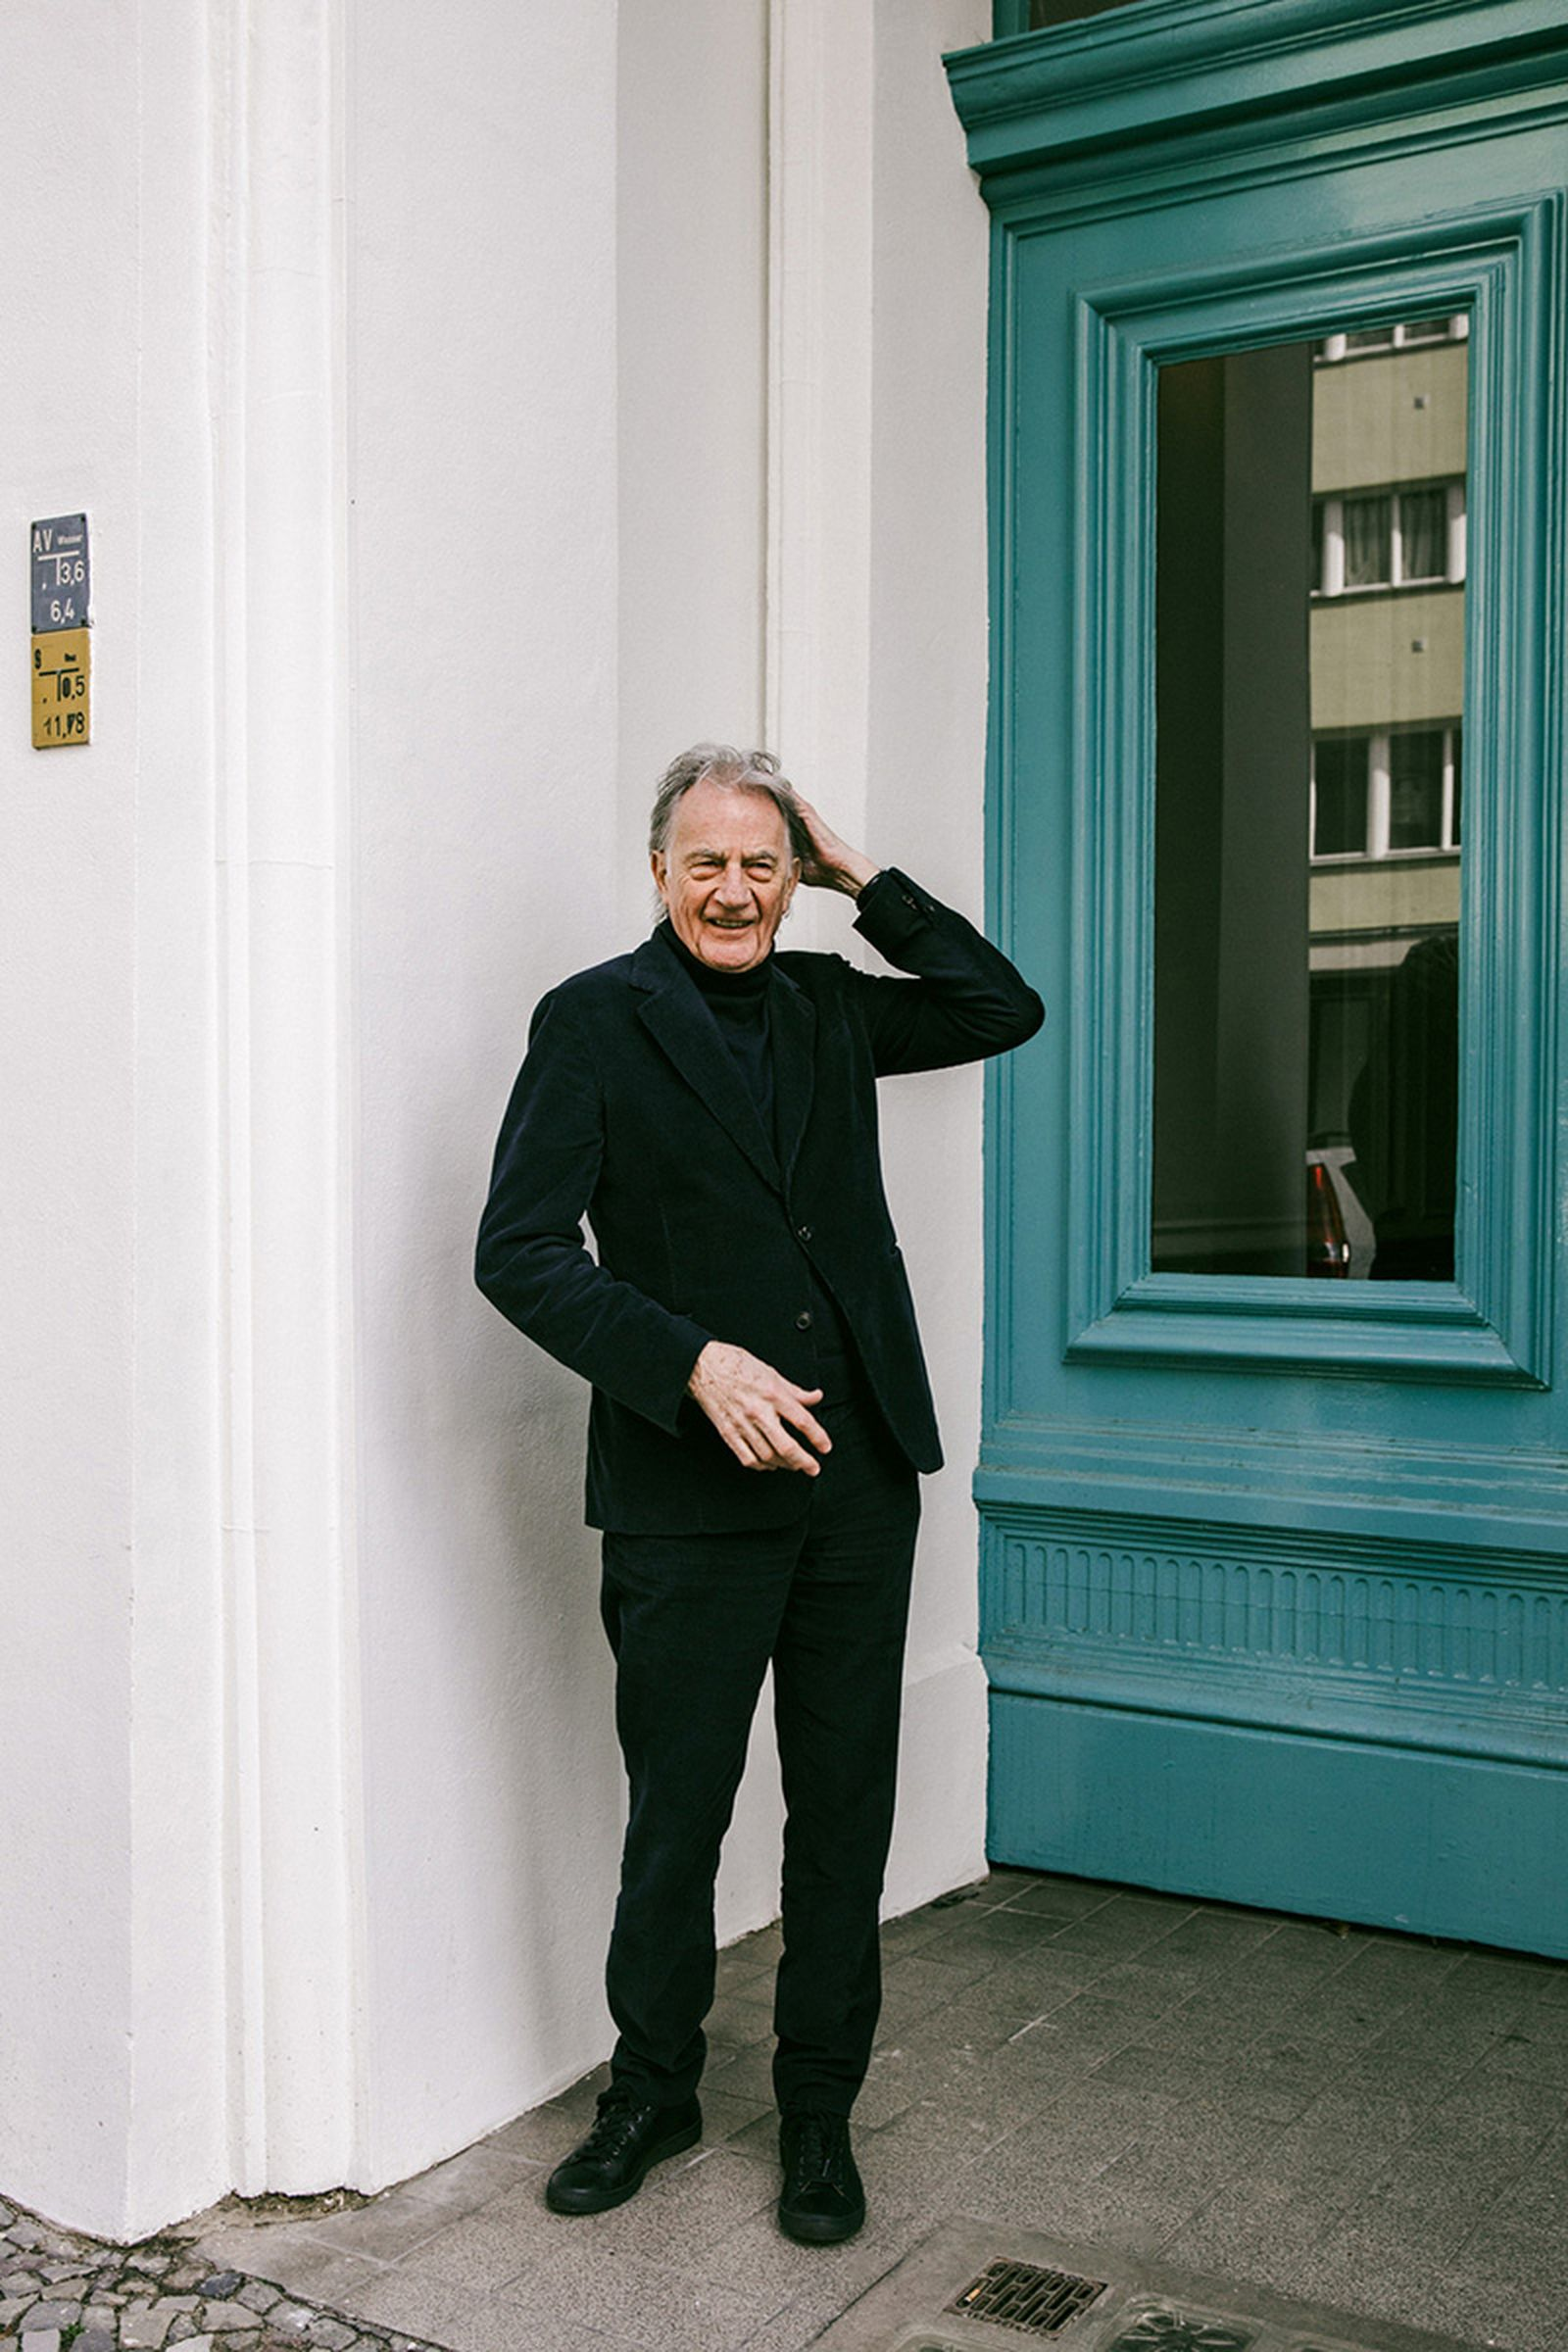 paul-smith-50-year-anniversary-interview-05